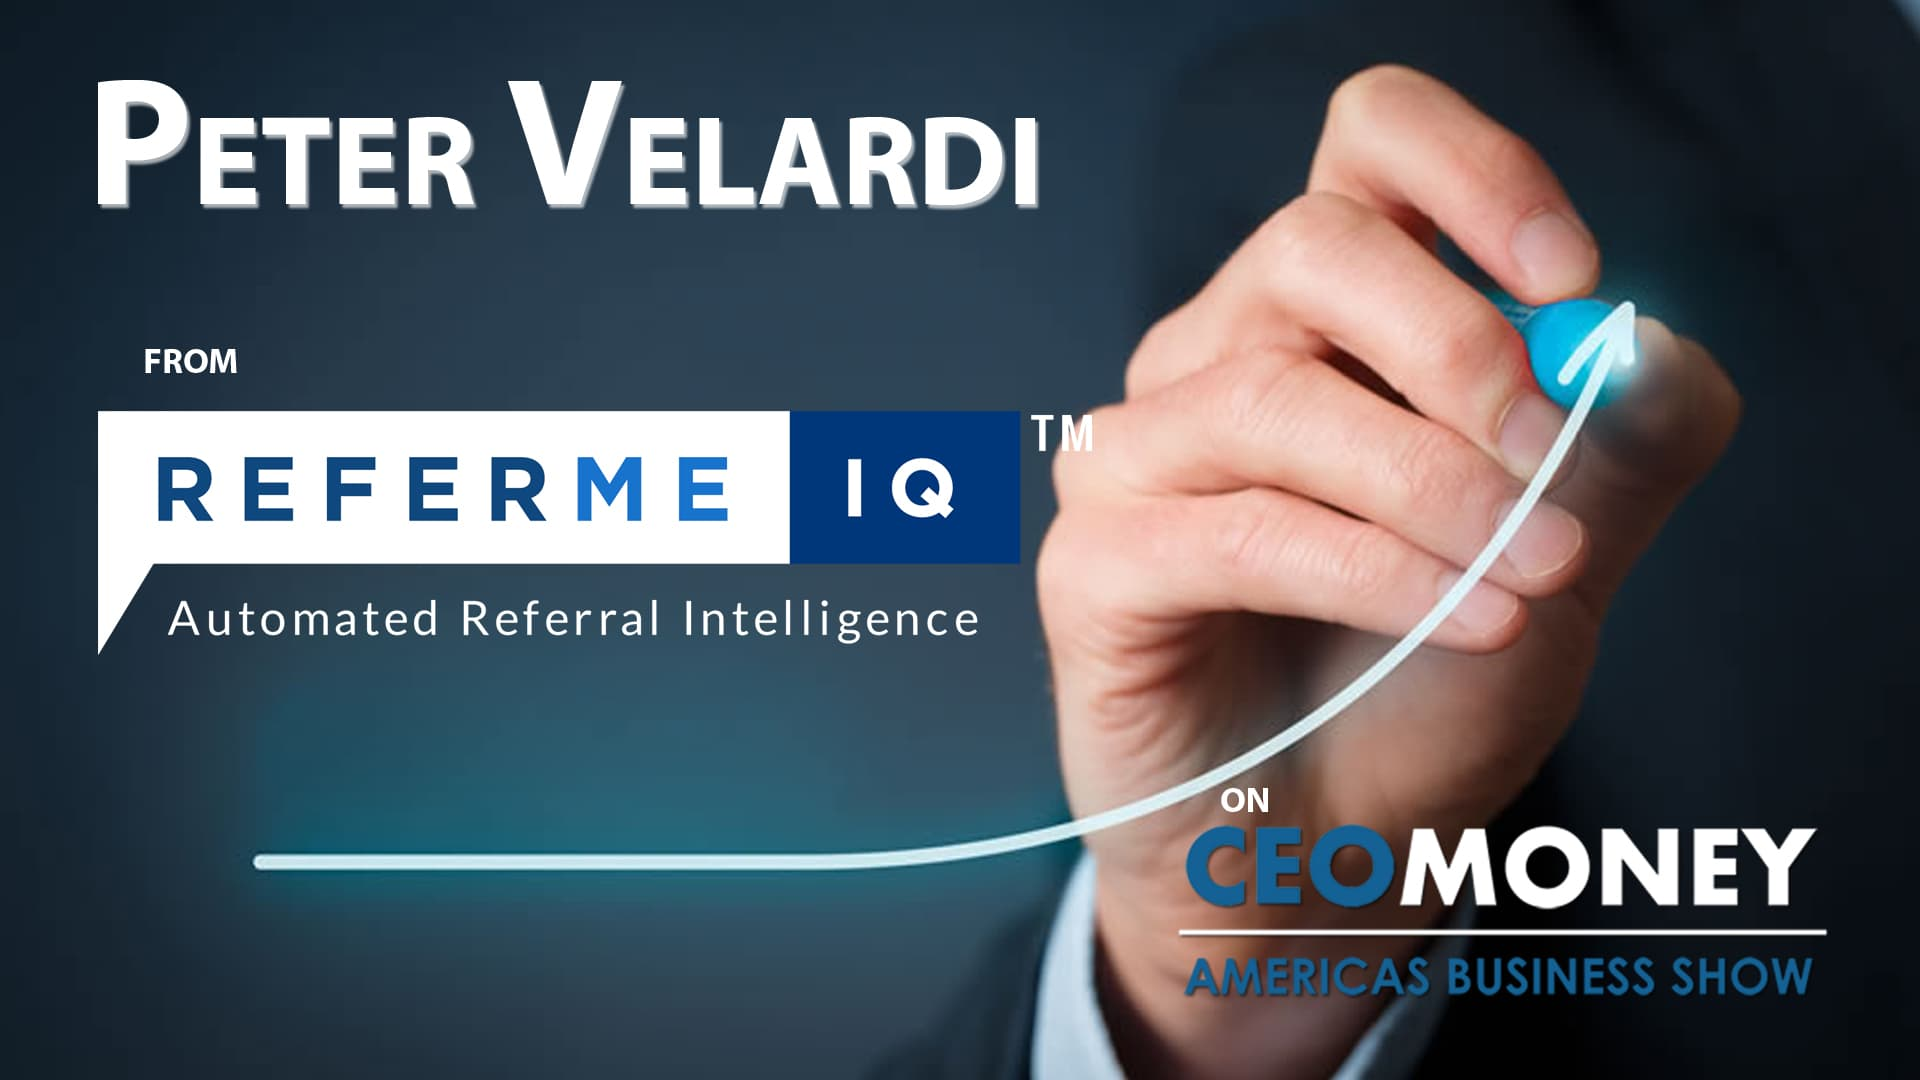 Peter Velardi on the strengths of ReferMe IQ's turnkey referral marketing system